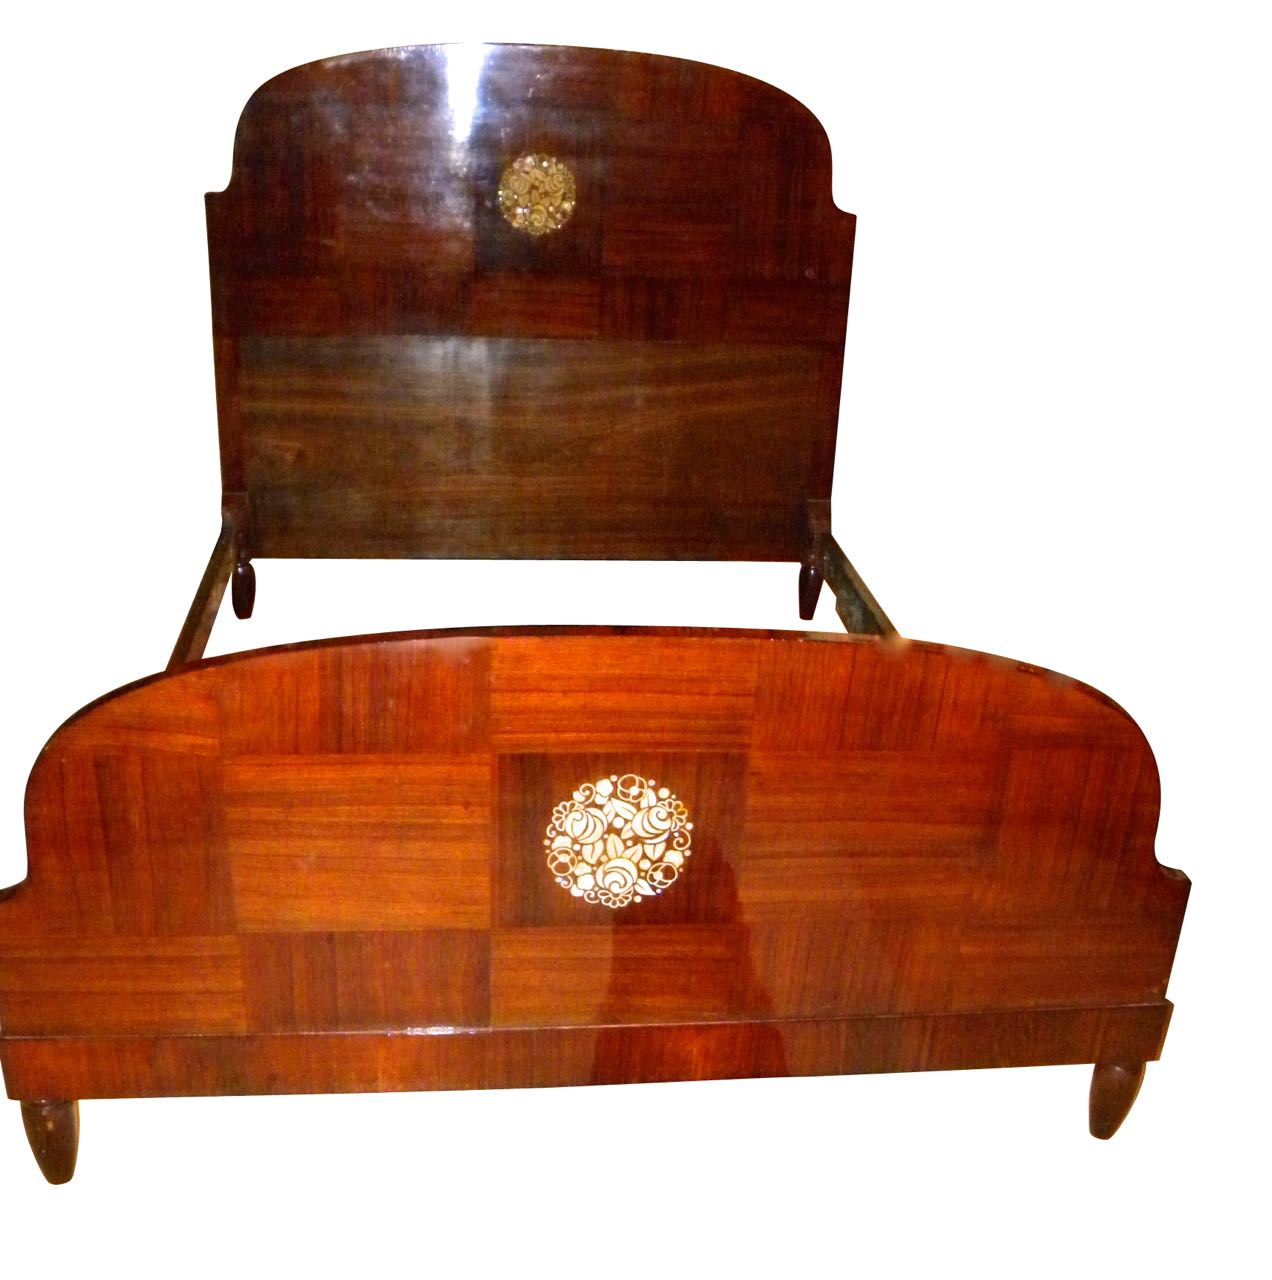 Art Deco Bedroom Furniture Sold | Art Deco Collection